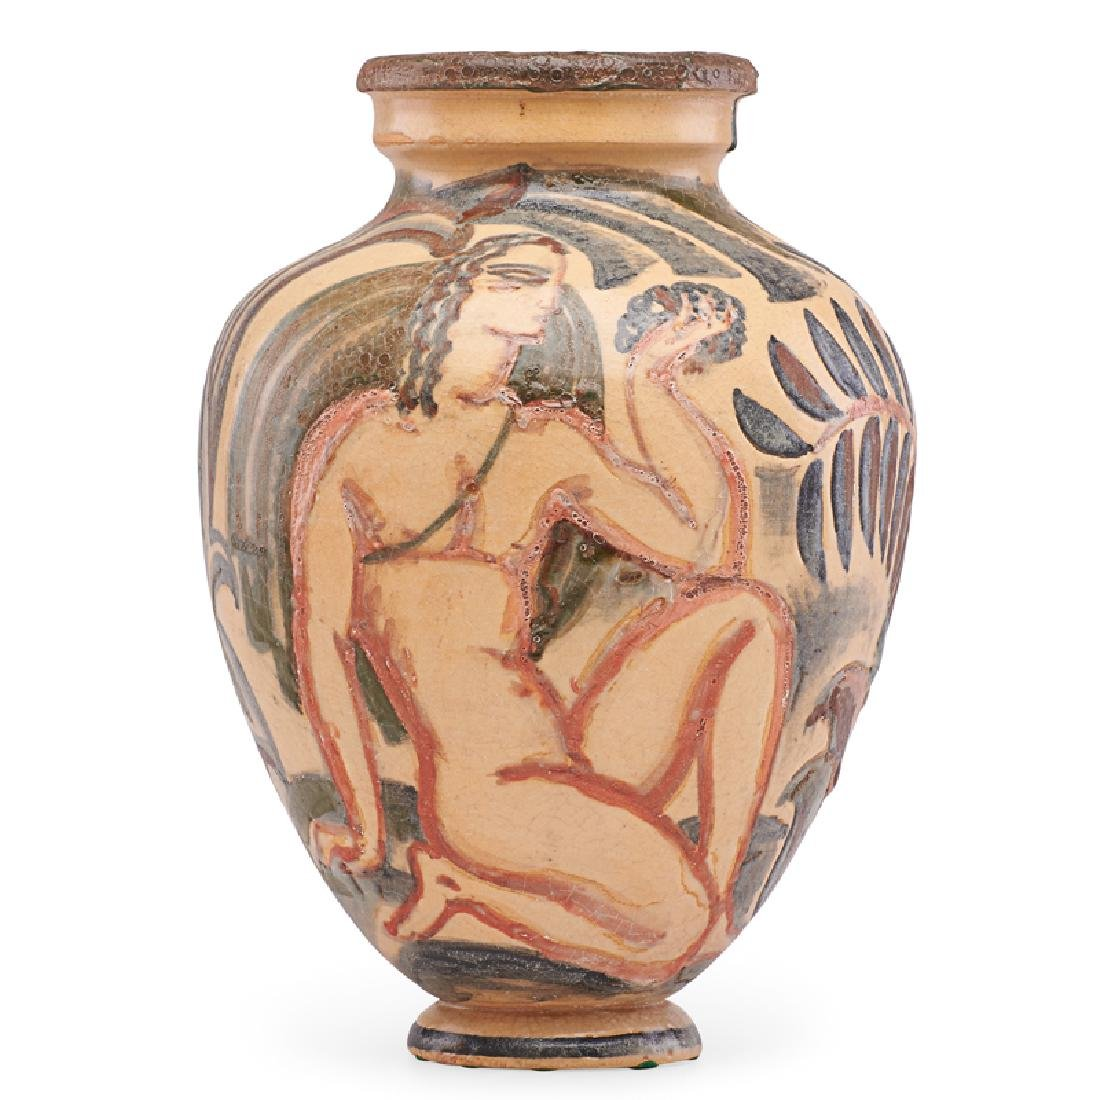 RENE BUTHAUD Vase with nudes